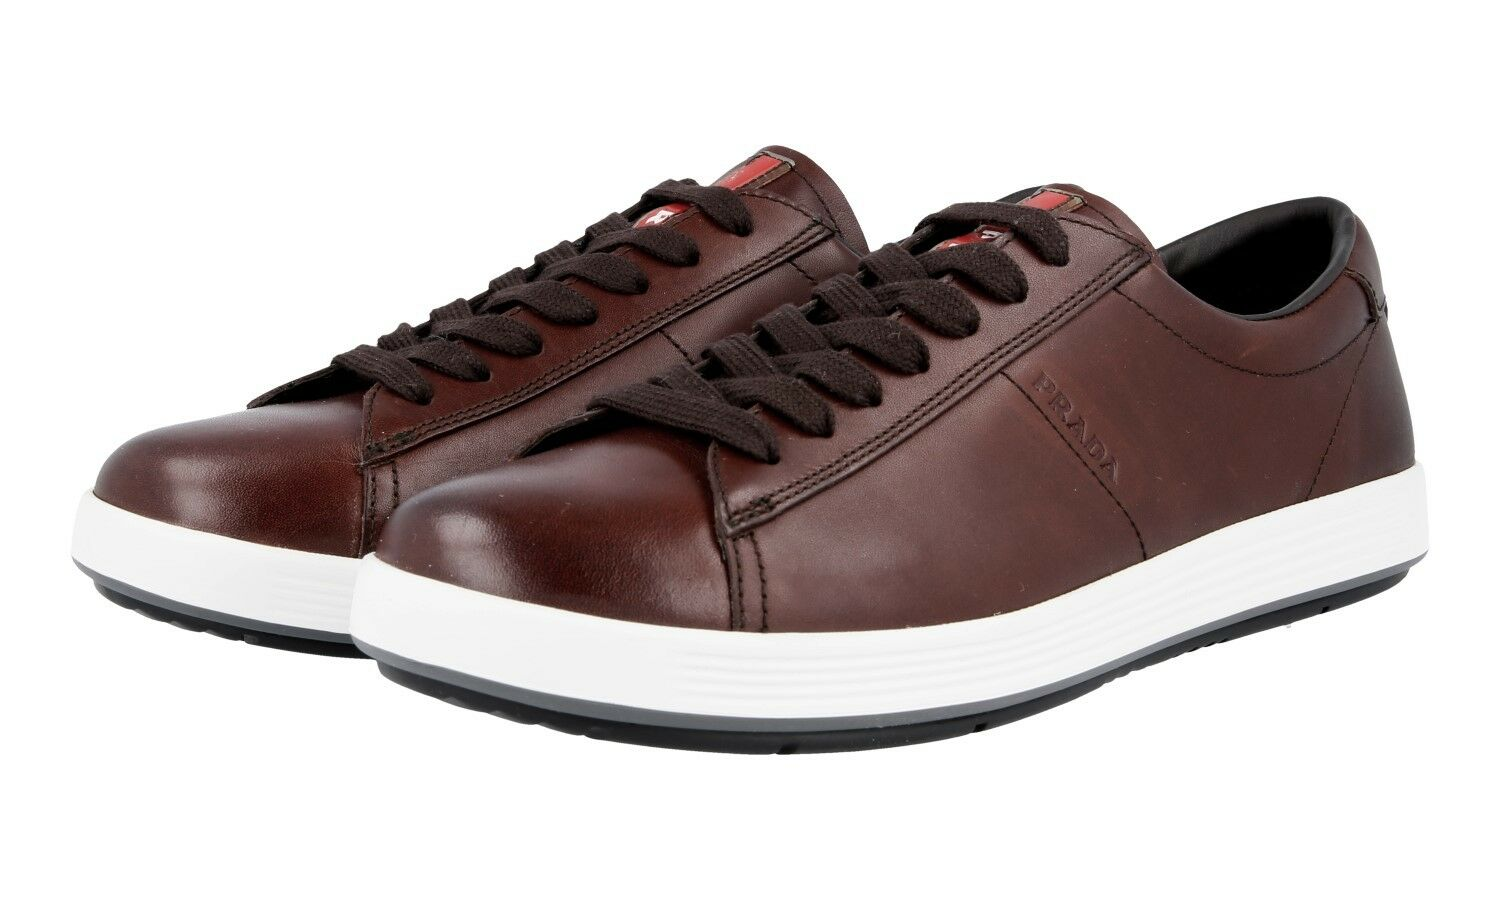 LUXUS PRADA SNEAKER SCHUHE 4E2860 brown NEU NEW 7 41 41,5